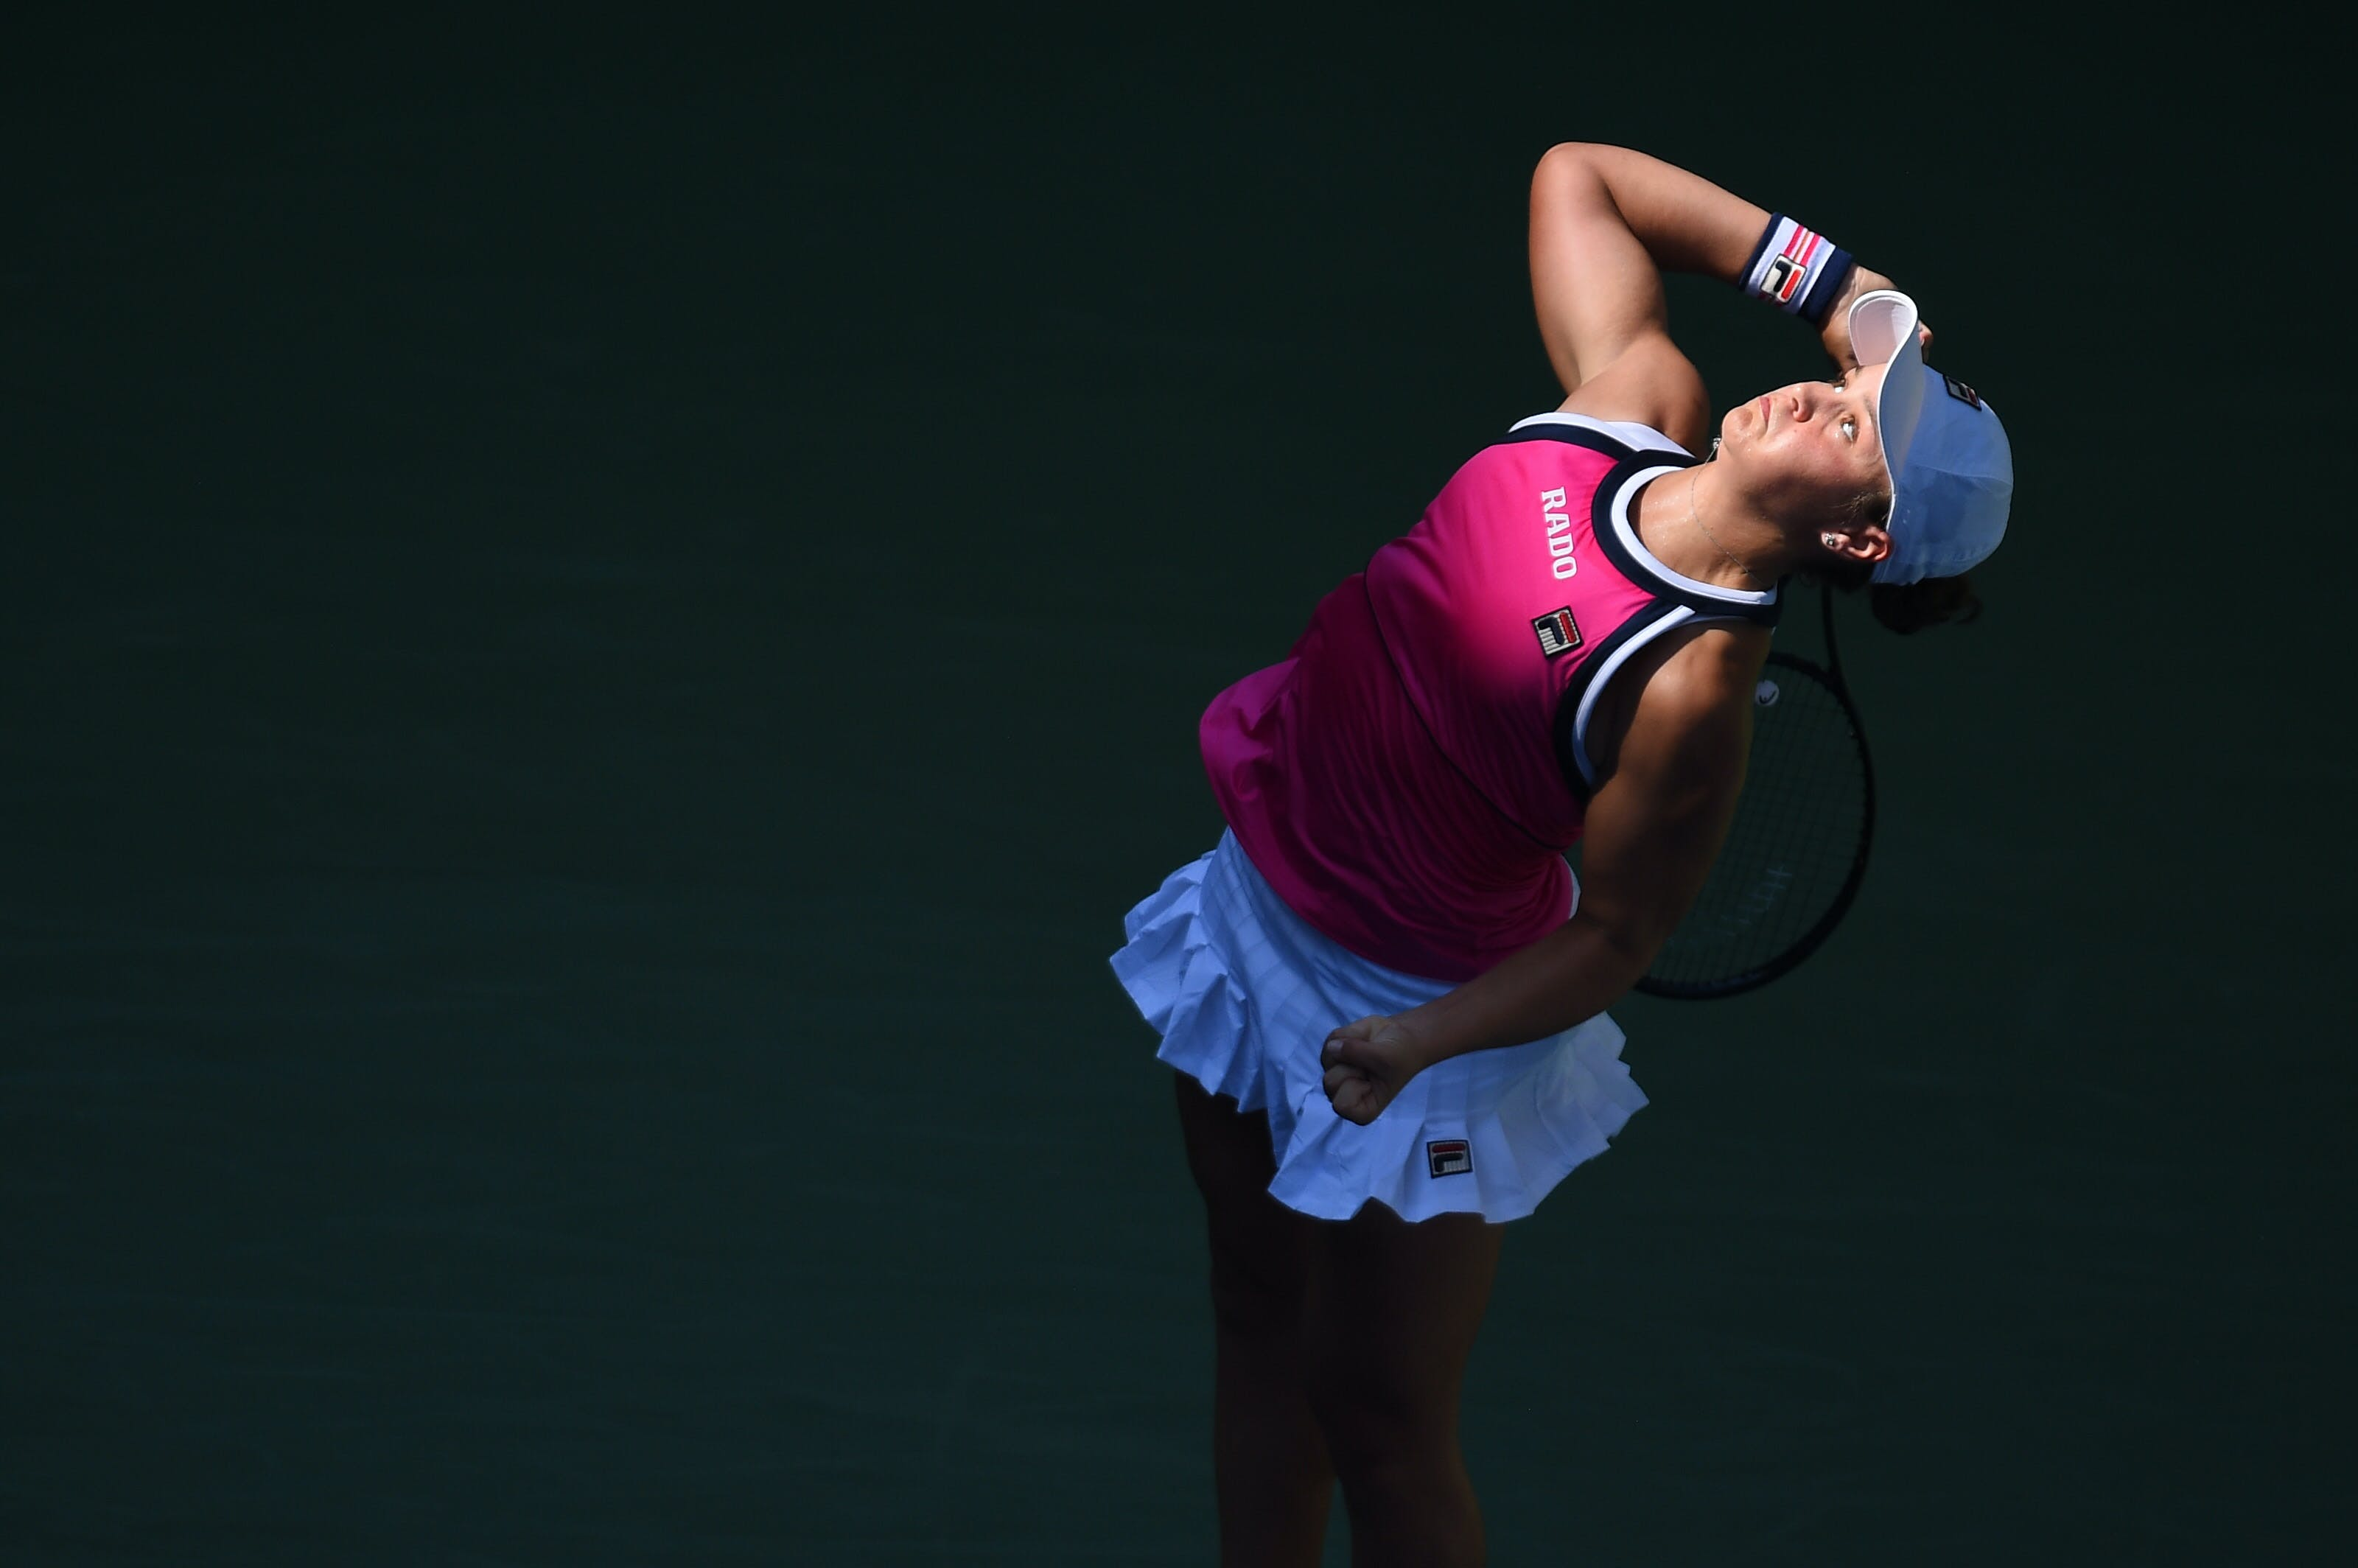 Ashleigh Barty serving in the light during her third round match at the 2019 US Open